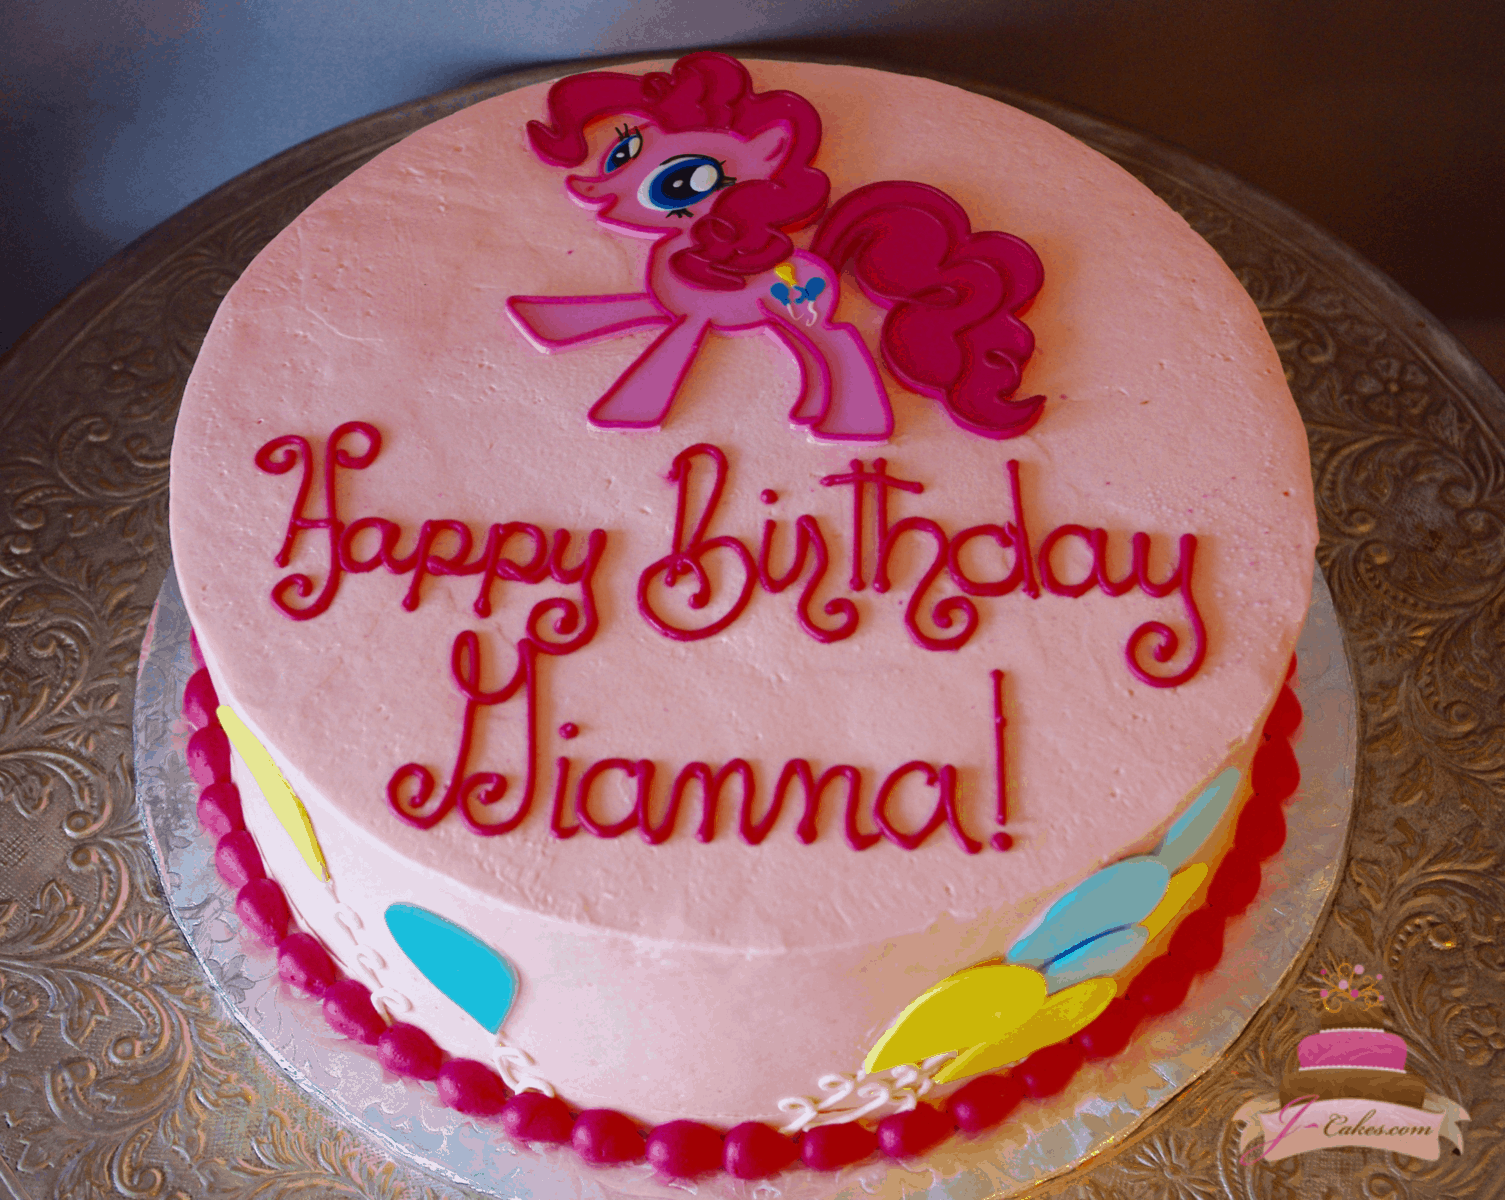 545 My Little Pony Cake